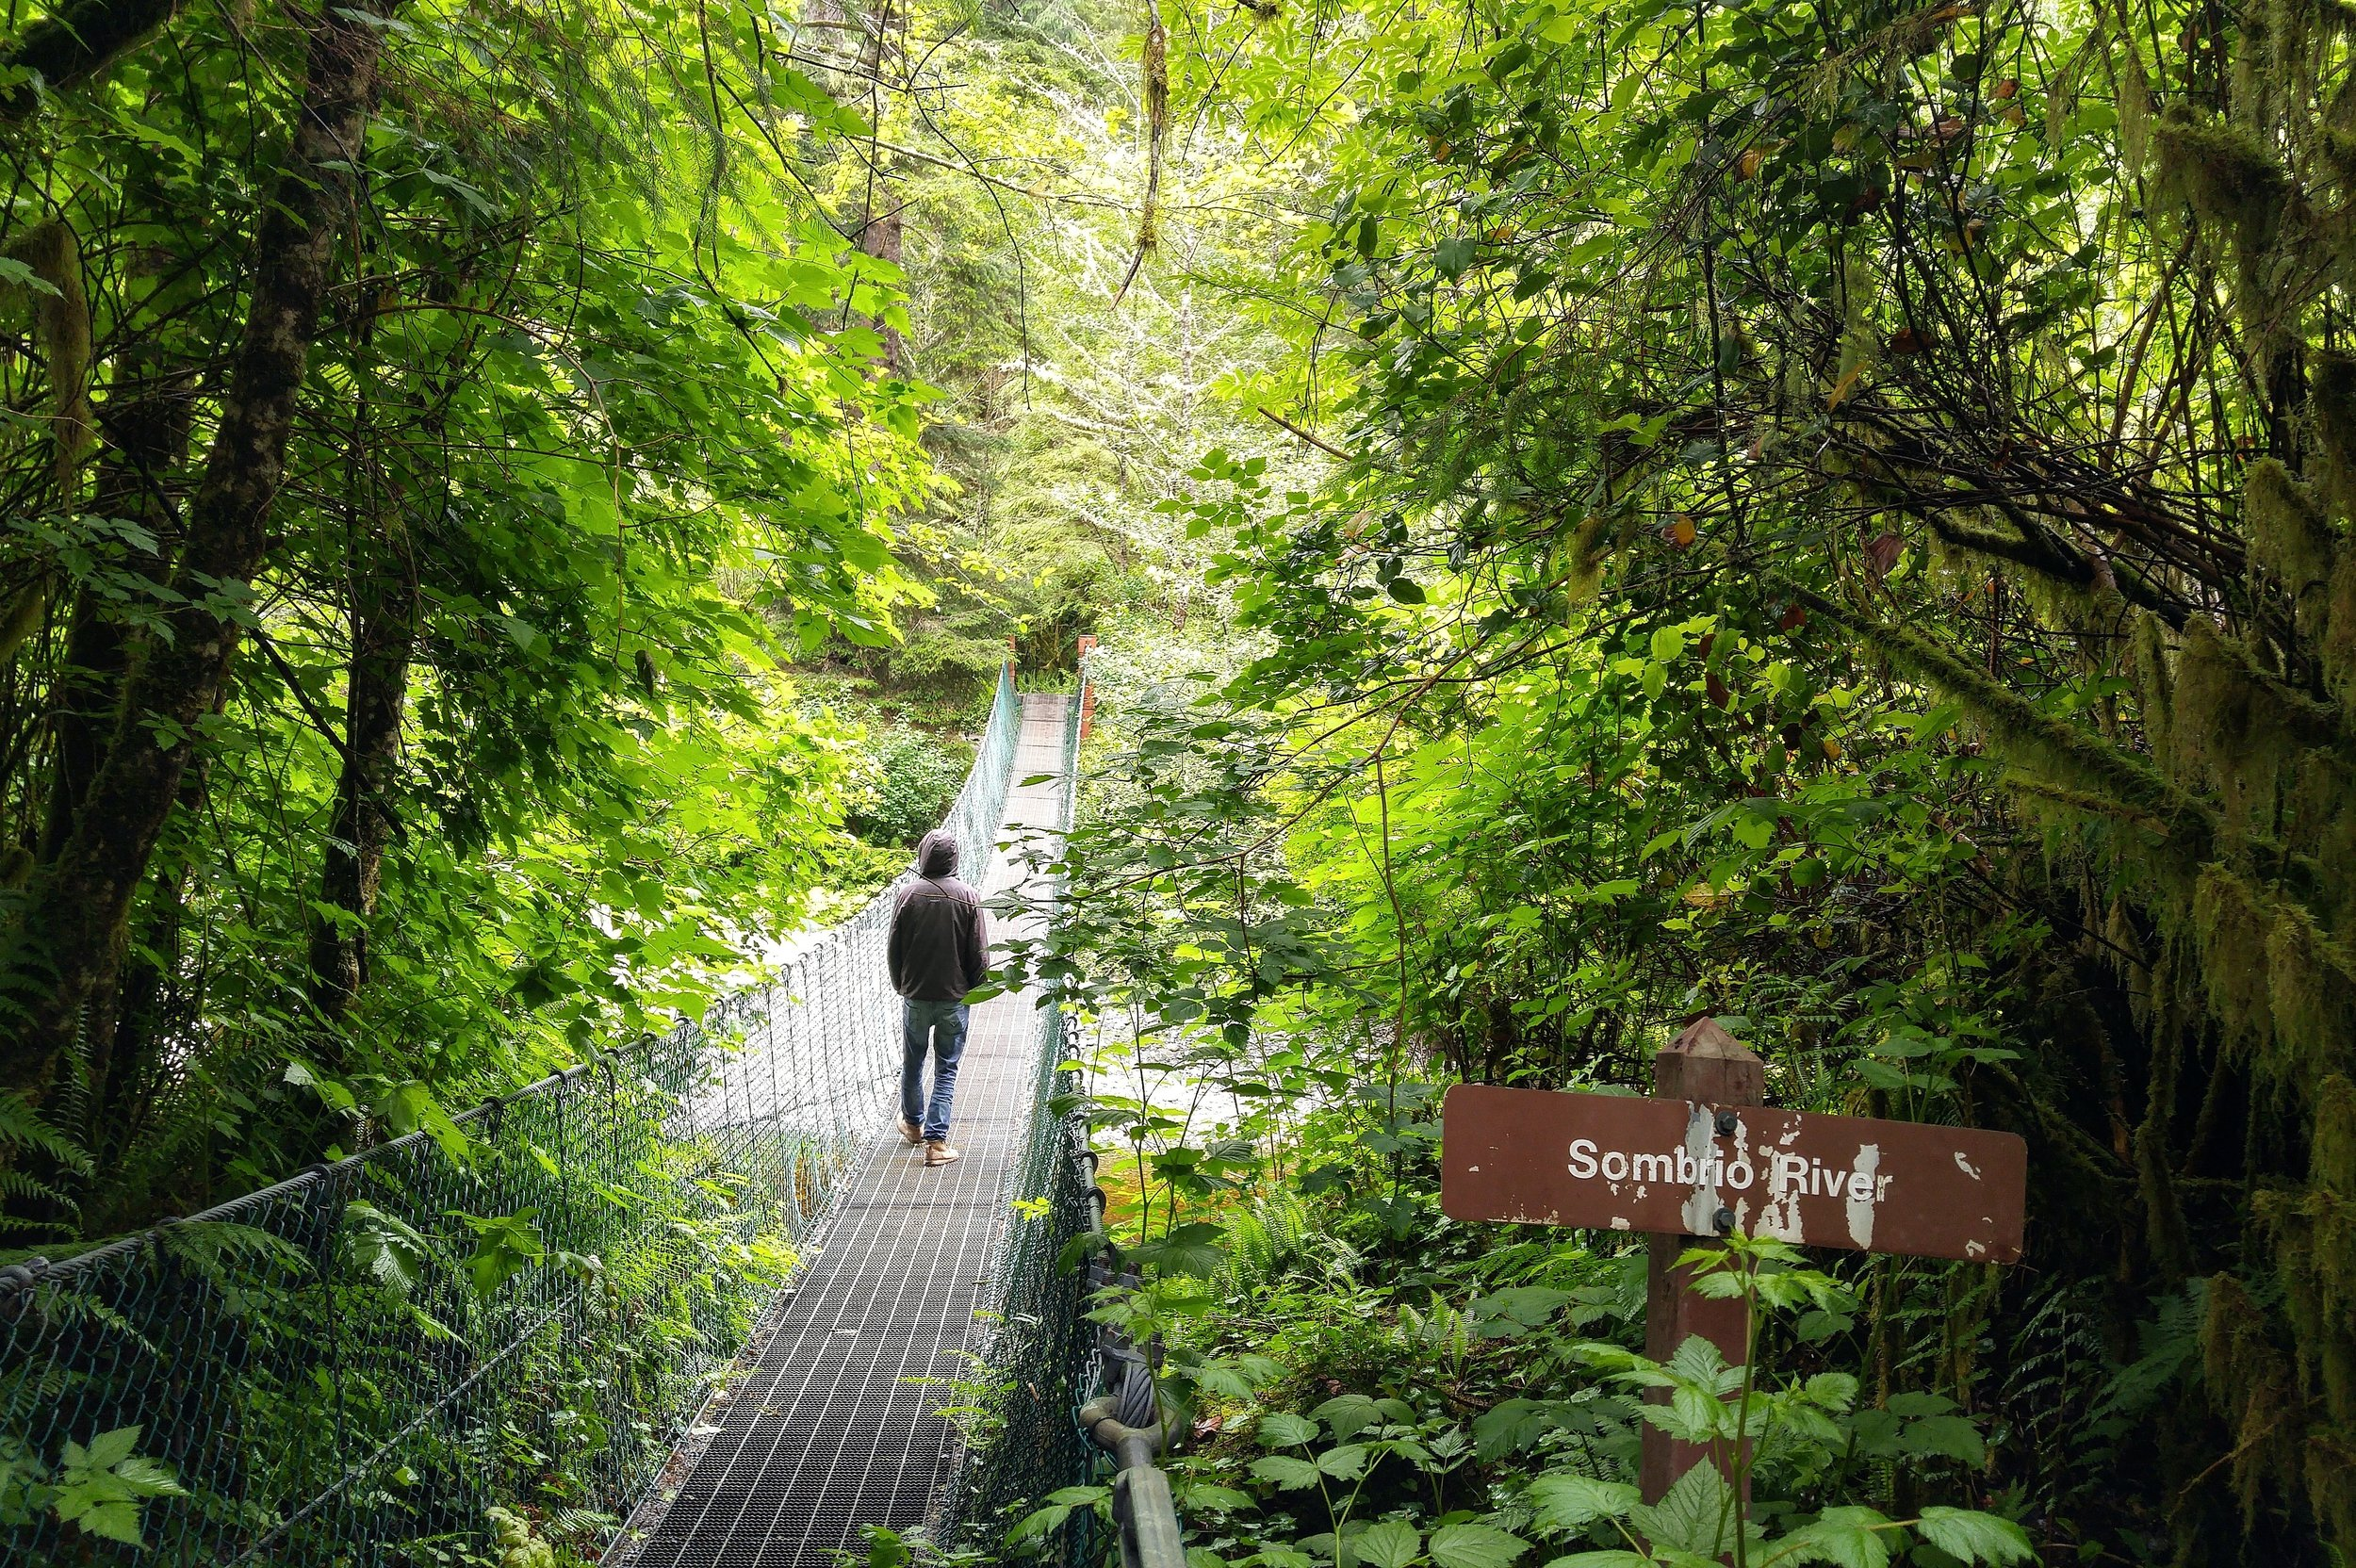 The forest walk that leads to Sombrio beach is something out of a fairytale.